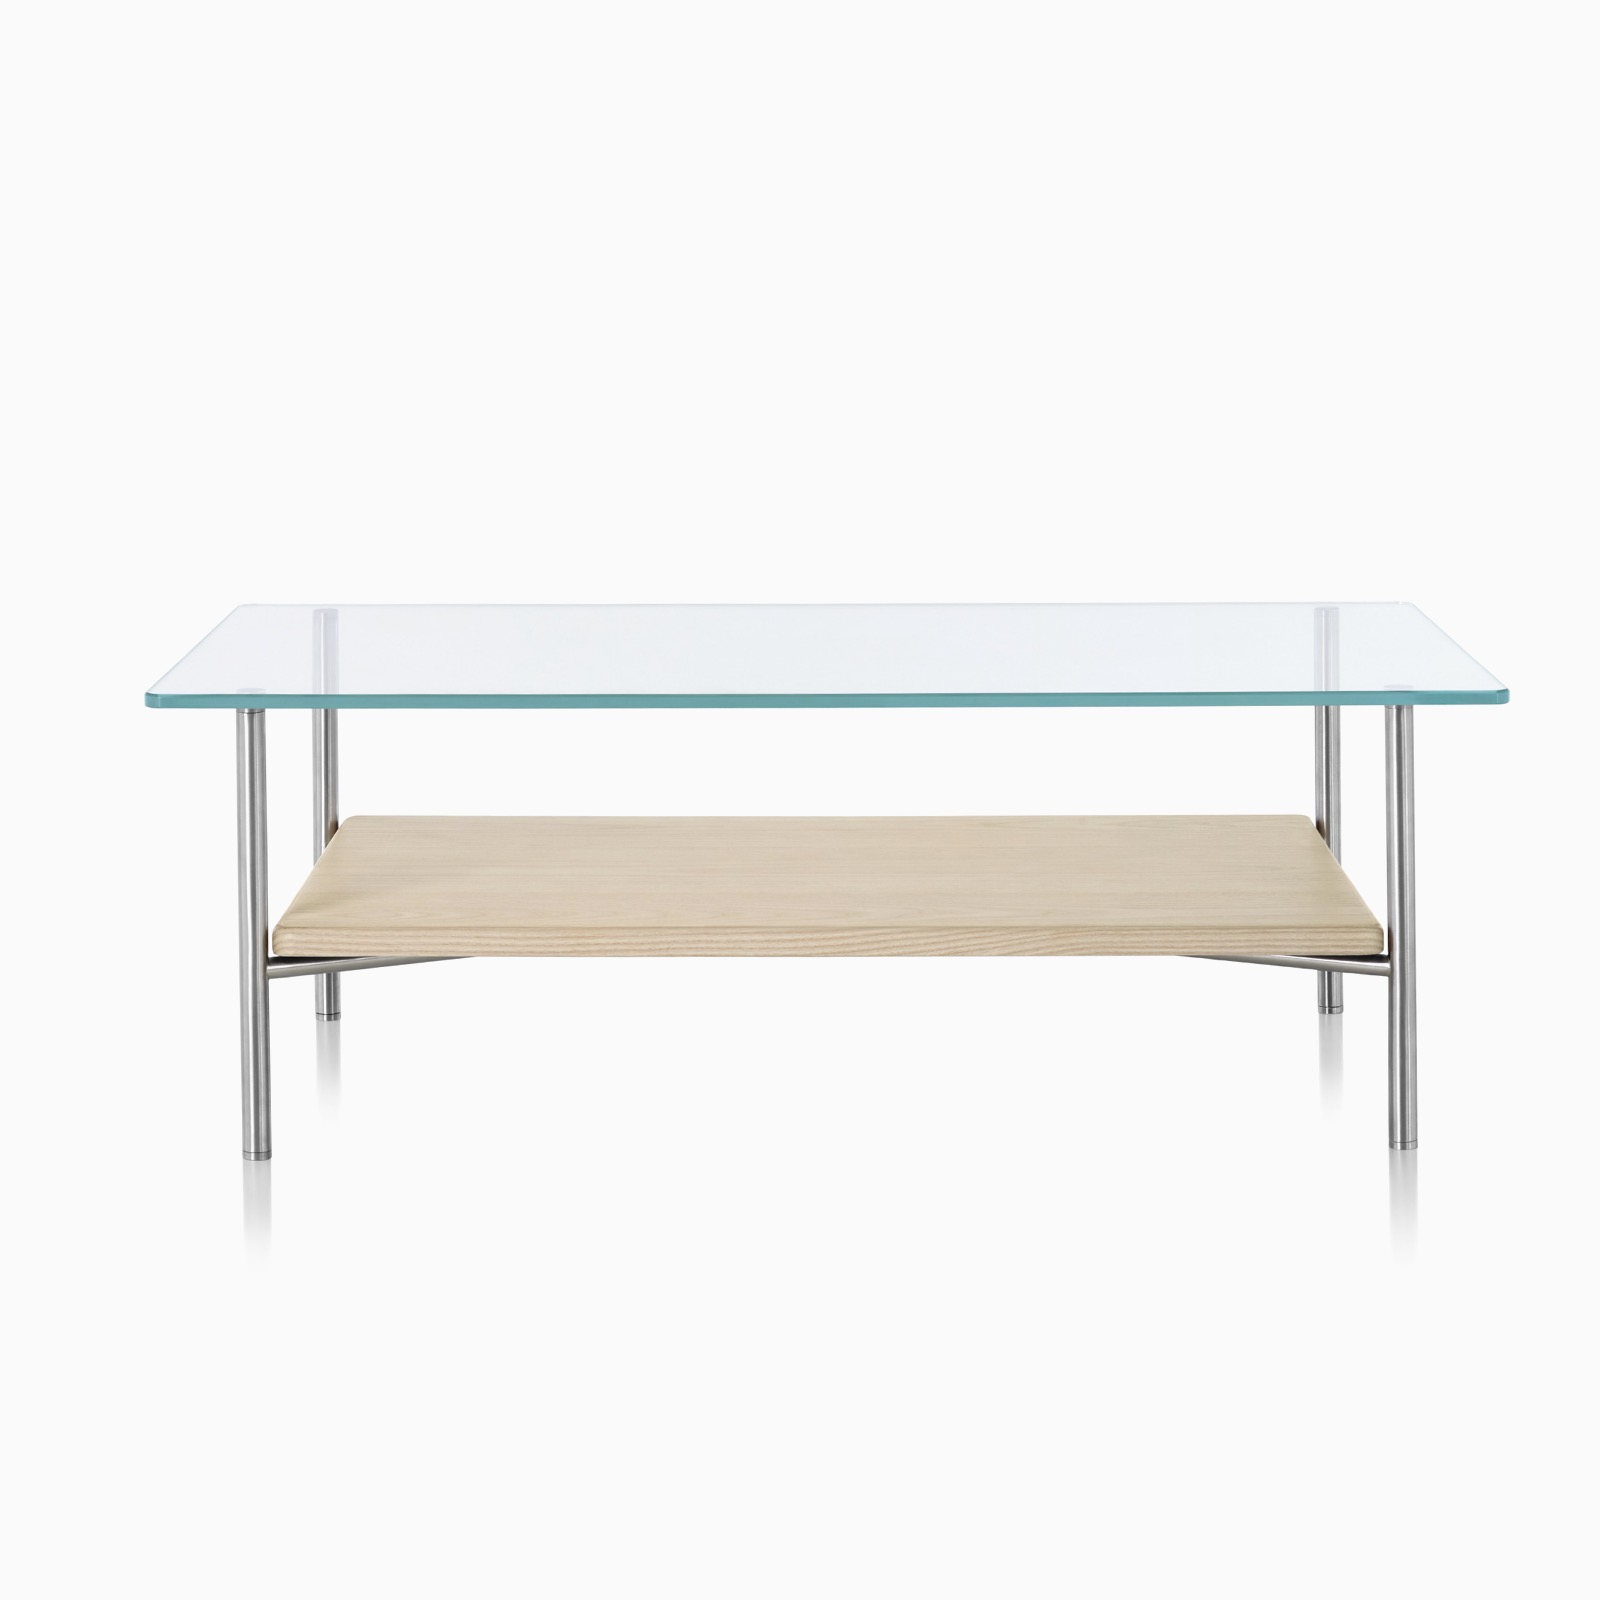 A rectangular Layer glass top occasional table with a light wood lower shelf.